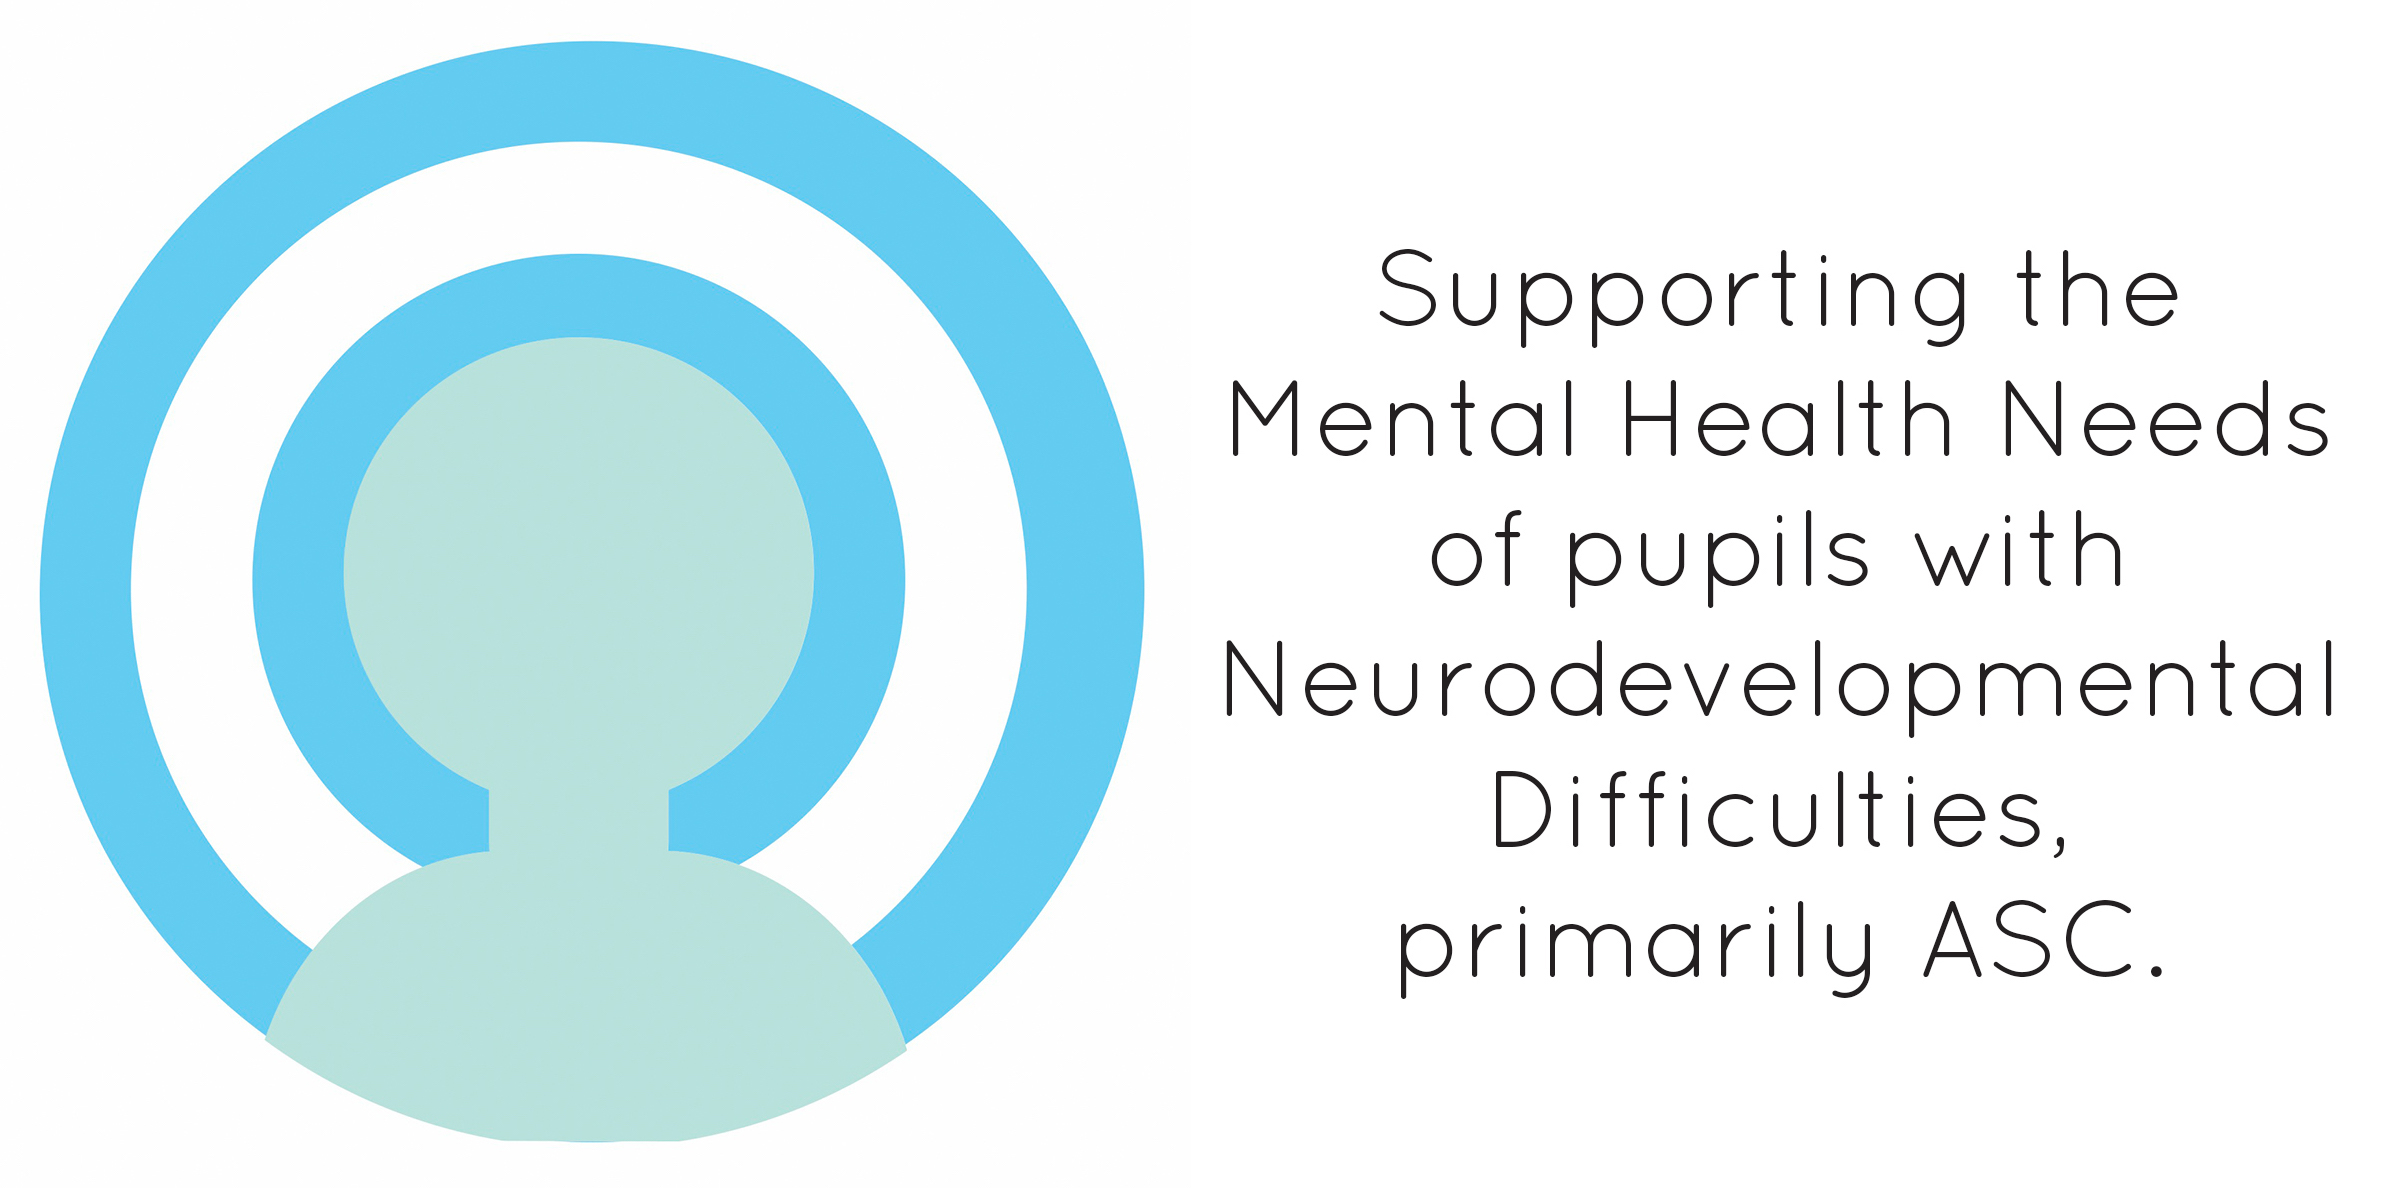 Supporting the Mental Health Needs of pupils with Neurodevelopmental Difficulties (primarily ASC)